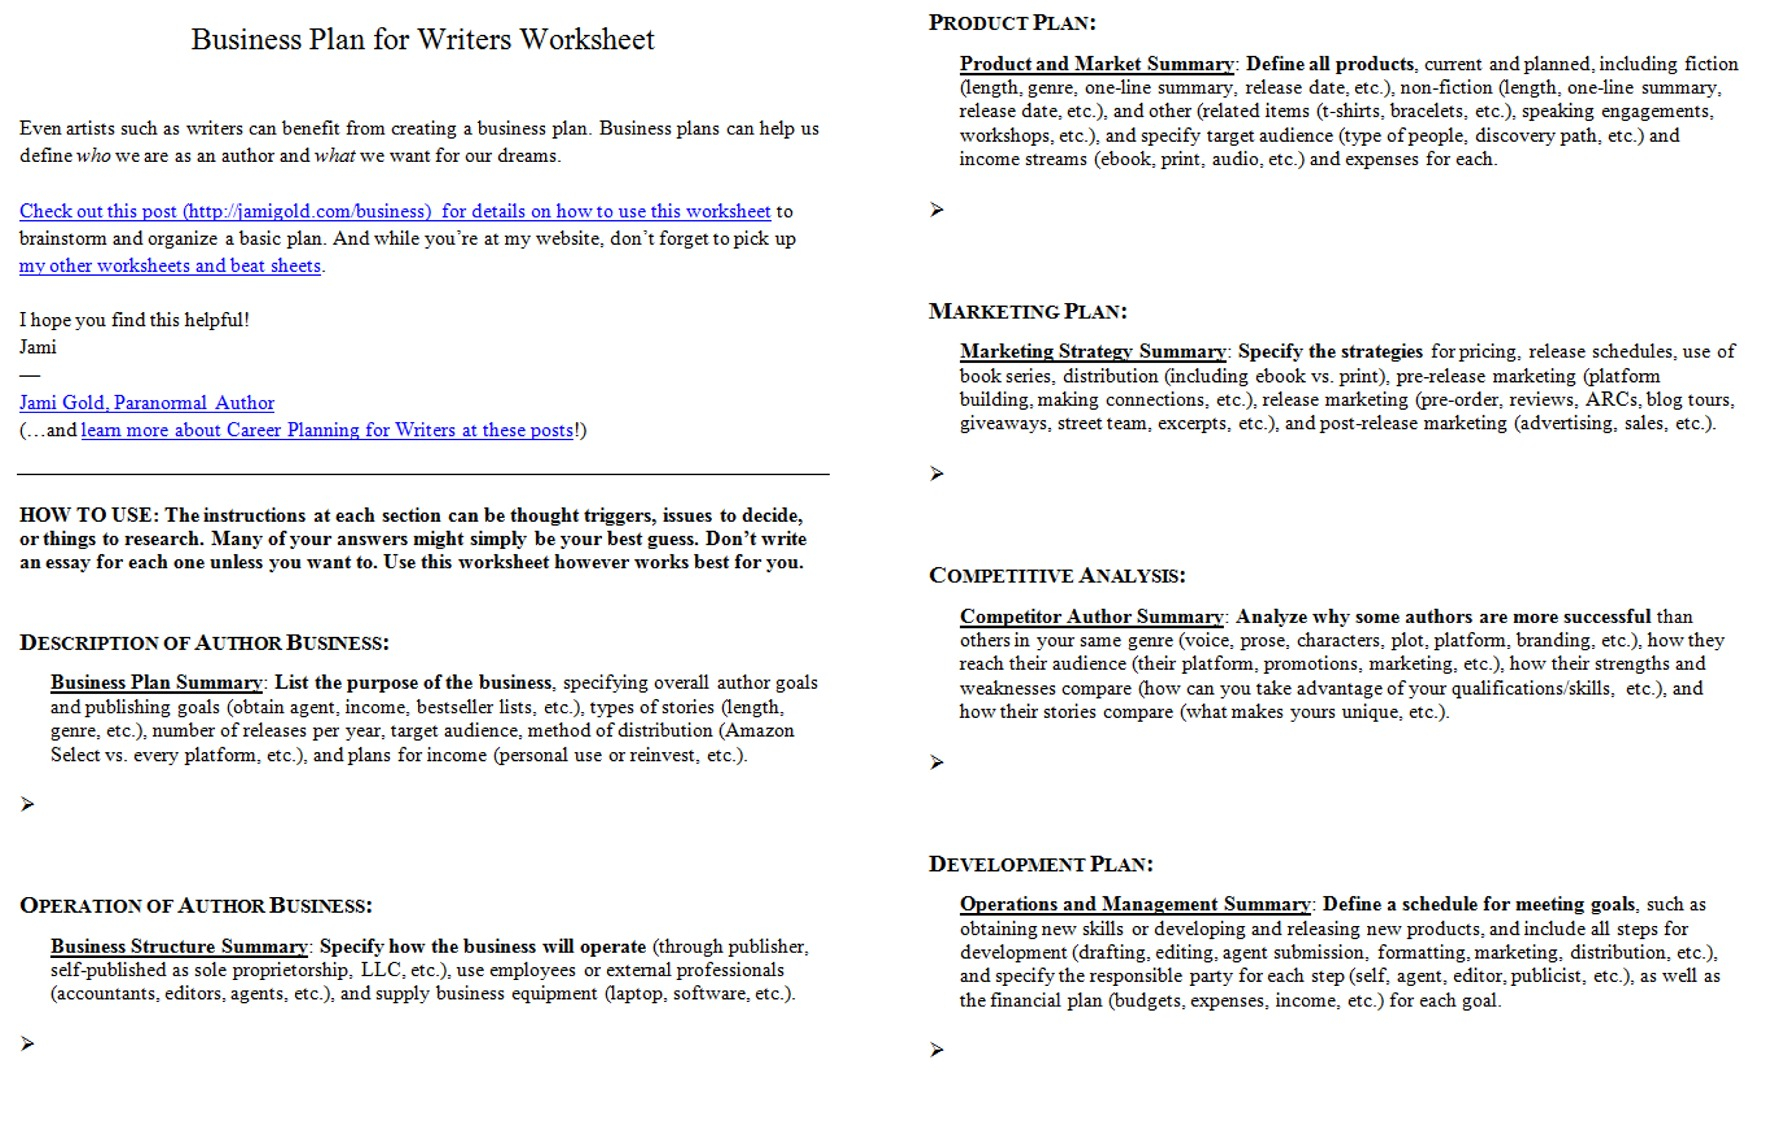 Weirdmailus  Pleasant Worksheets For Writers  Jami Gold Paranormal Author With Marvelous Screen Shot Of Both Pages Of The Business Plan For Writers Worksheet With Comely Free Pumpkin Worksheets Also Free Adding Fractions Worksheets In Addition Subtraction Number Line Worksheets And Subtraction Word Problem Worksheet As Well As Fractions Worksheet Grade  Additionally Math Multiplying Fractions Worksheets From Jamigoldcom With Weirdmailus  Marvelous Worksheets For Writers  Jami Gold Paranormal Author With Comely Screen Shot Of Both Pages Of The Business Plan For Writers Worksheet And Pleasant Free Pumpkin Worksheets Also Free Adding Fractions Worksheets In Addition Subtraction Number Line Worksheets From Jamigoldcom